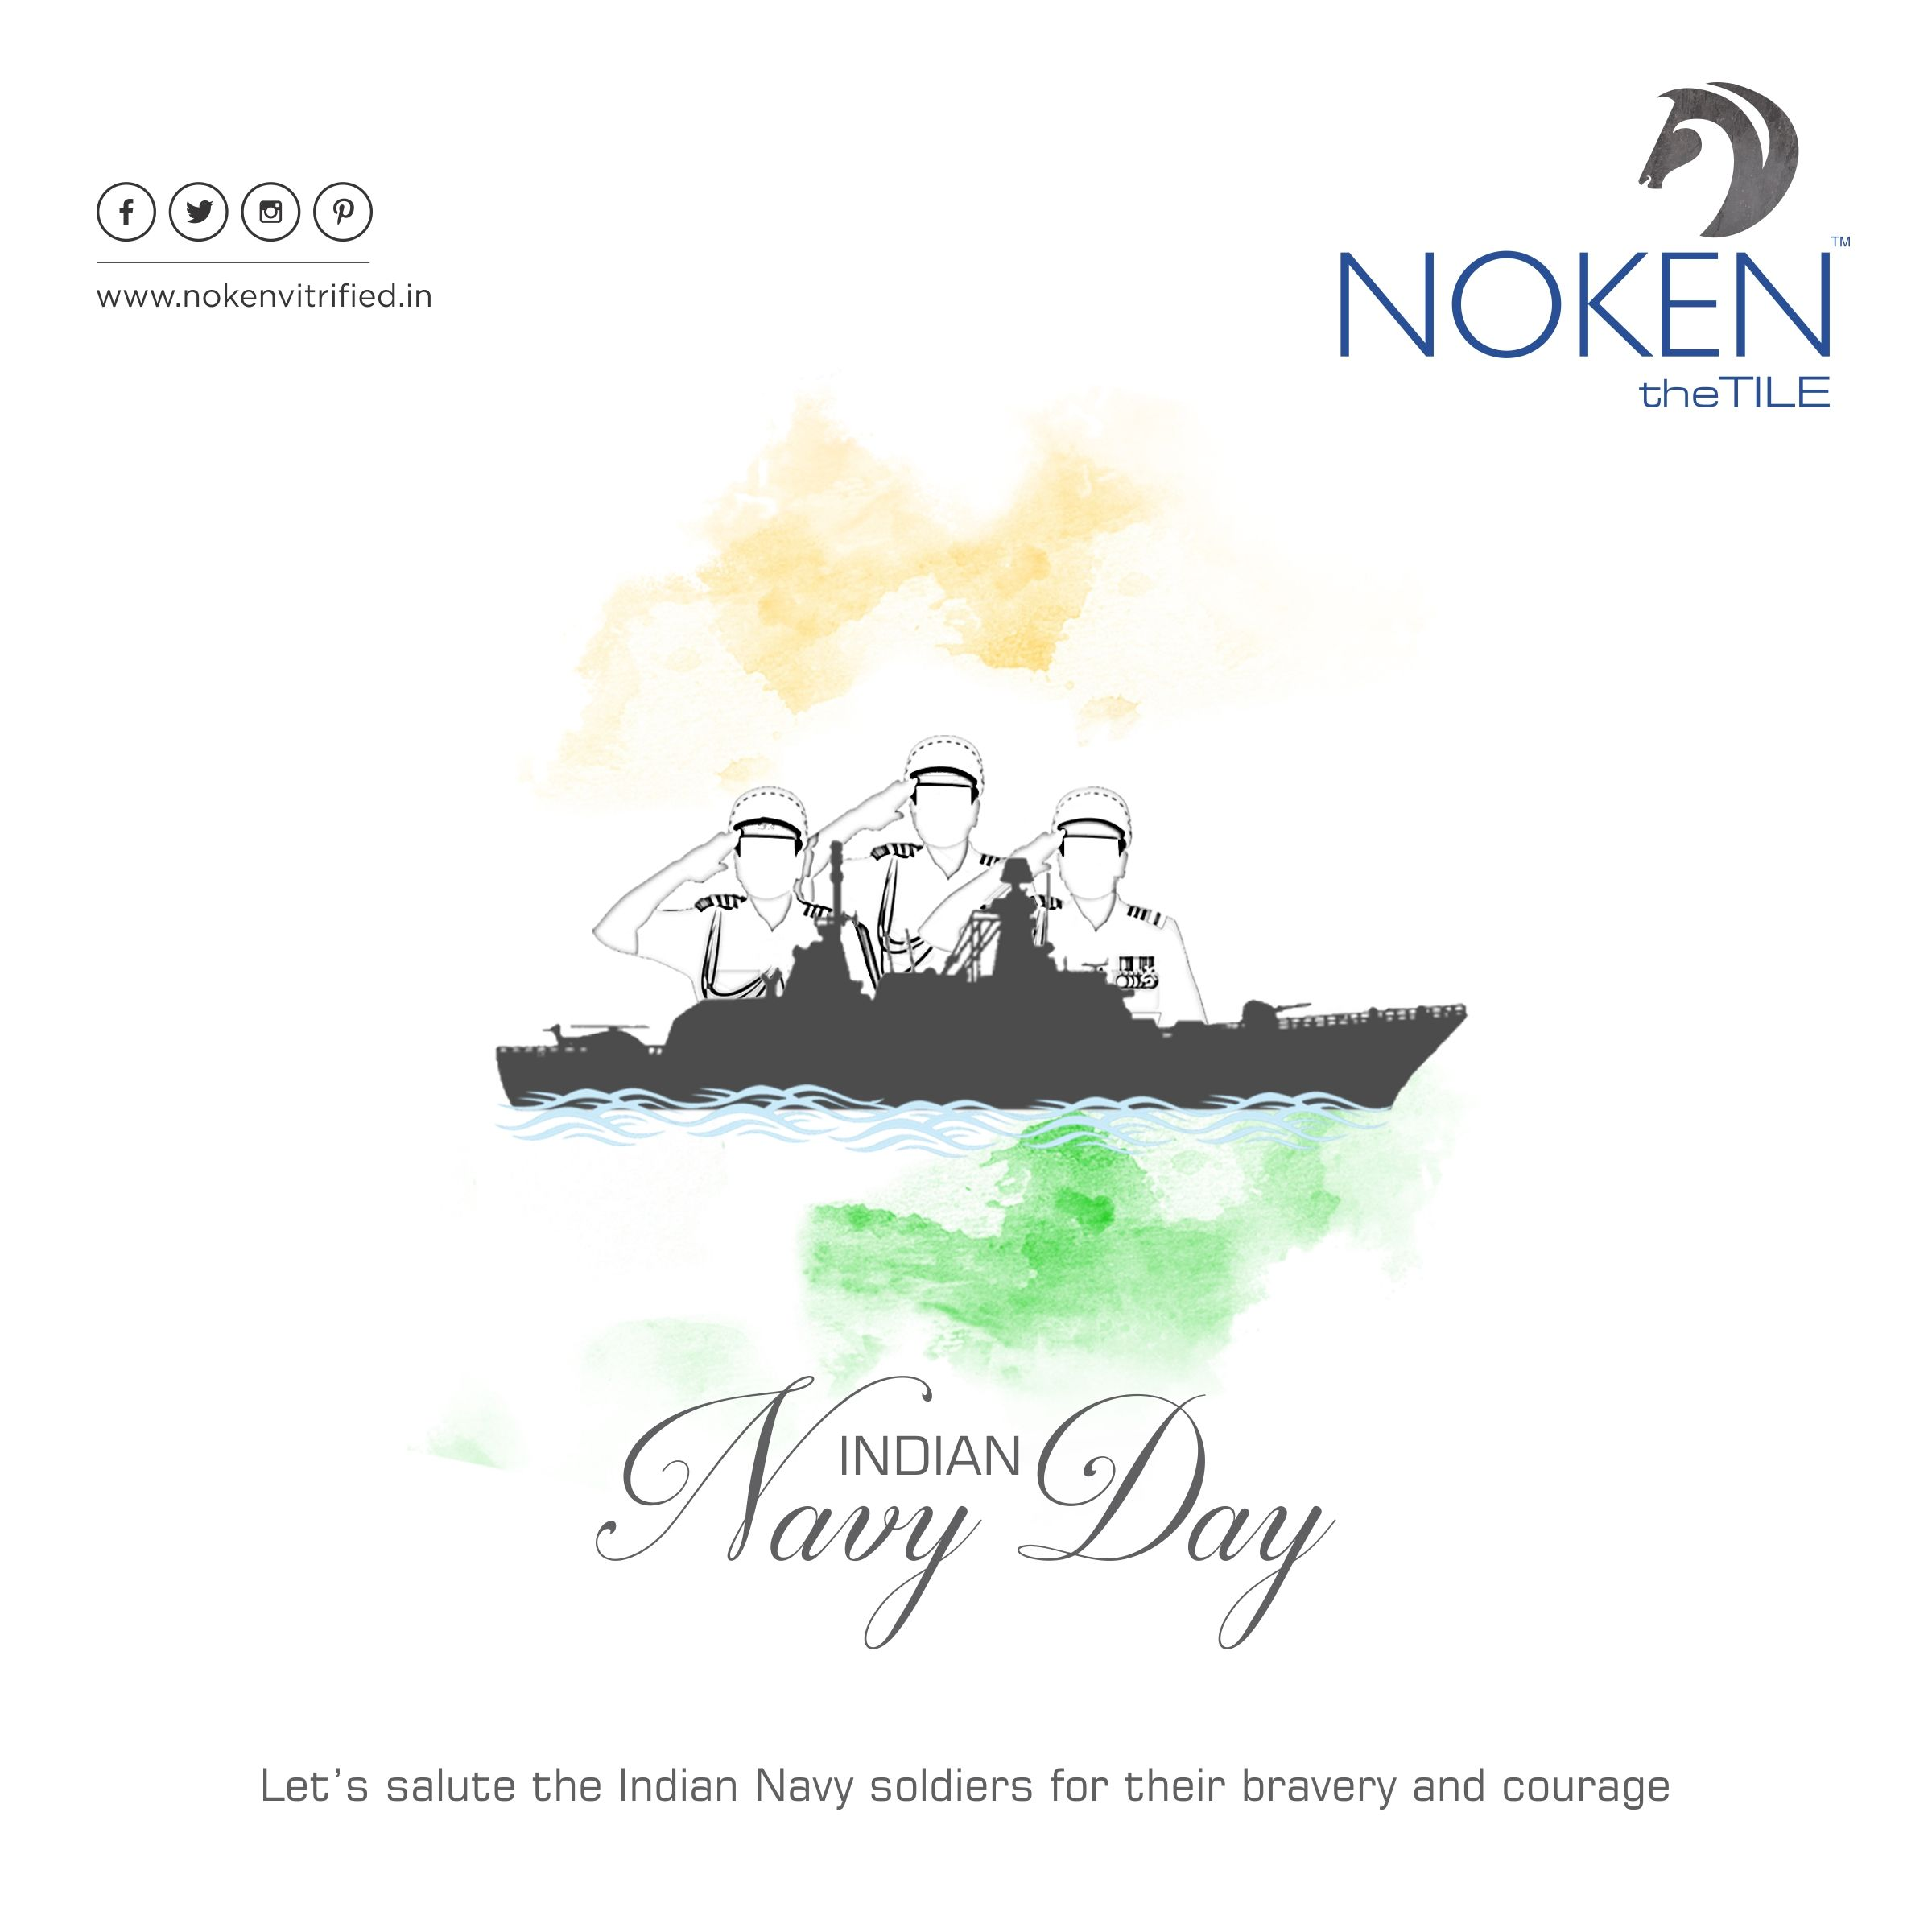 Let S Salute The Indian Navy Soldiers For Their Bravery And Courage Navy Day Of India Noken Tiles Ceramic Brand Fl Indian Navy Day Navy Day Indian Navy